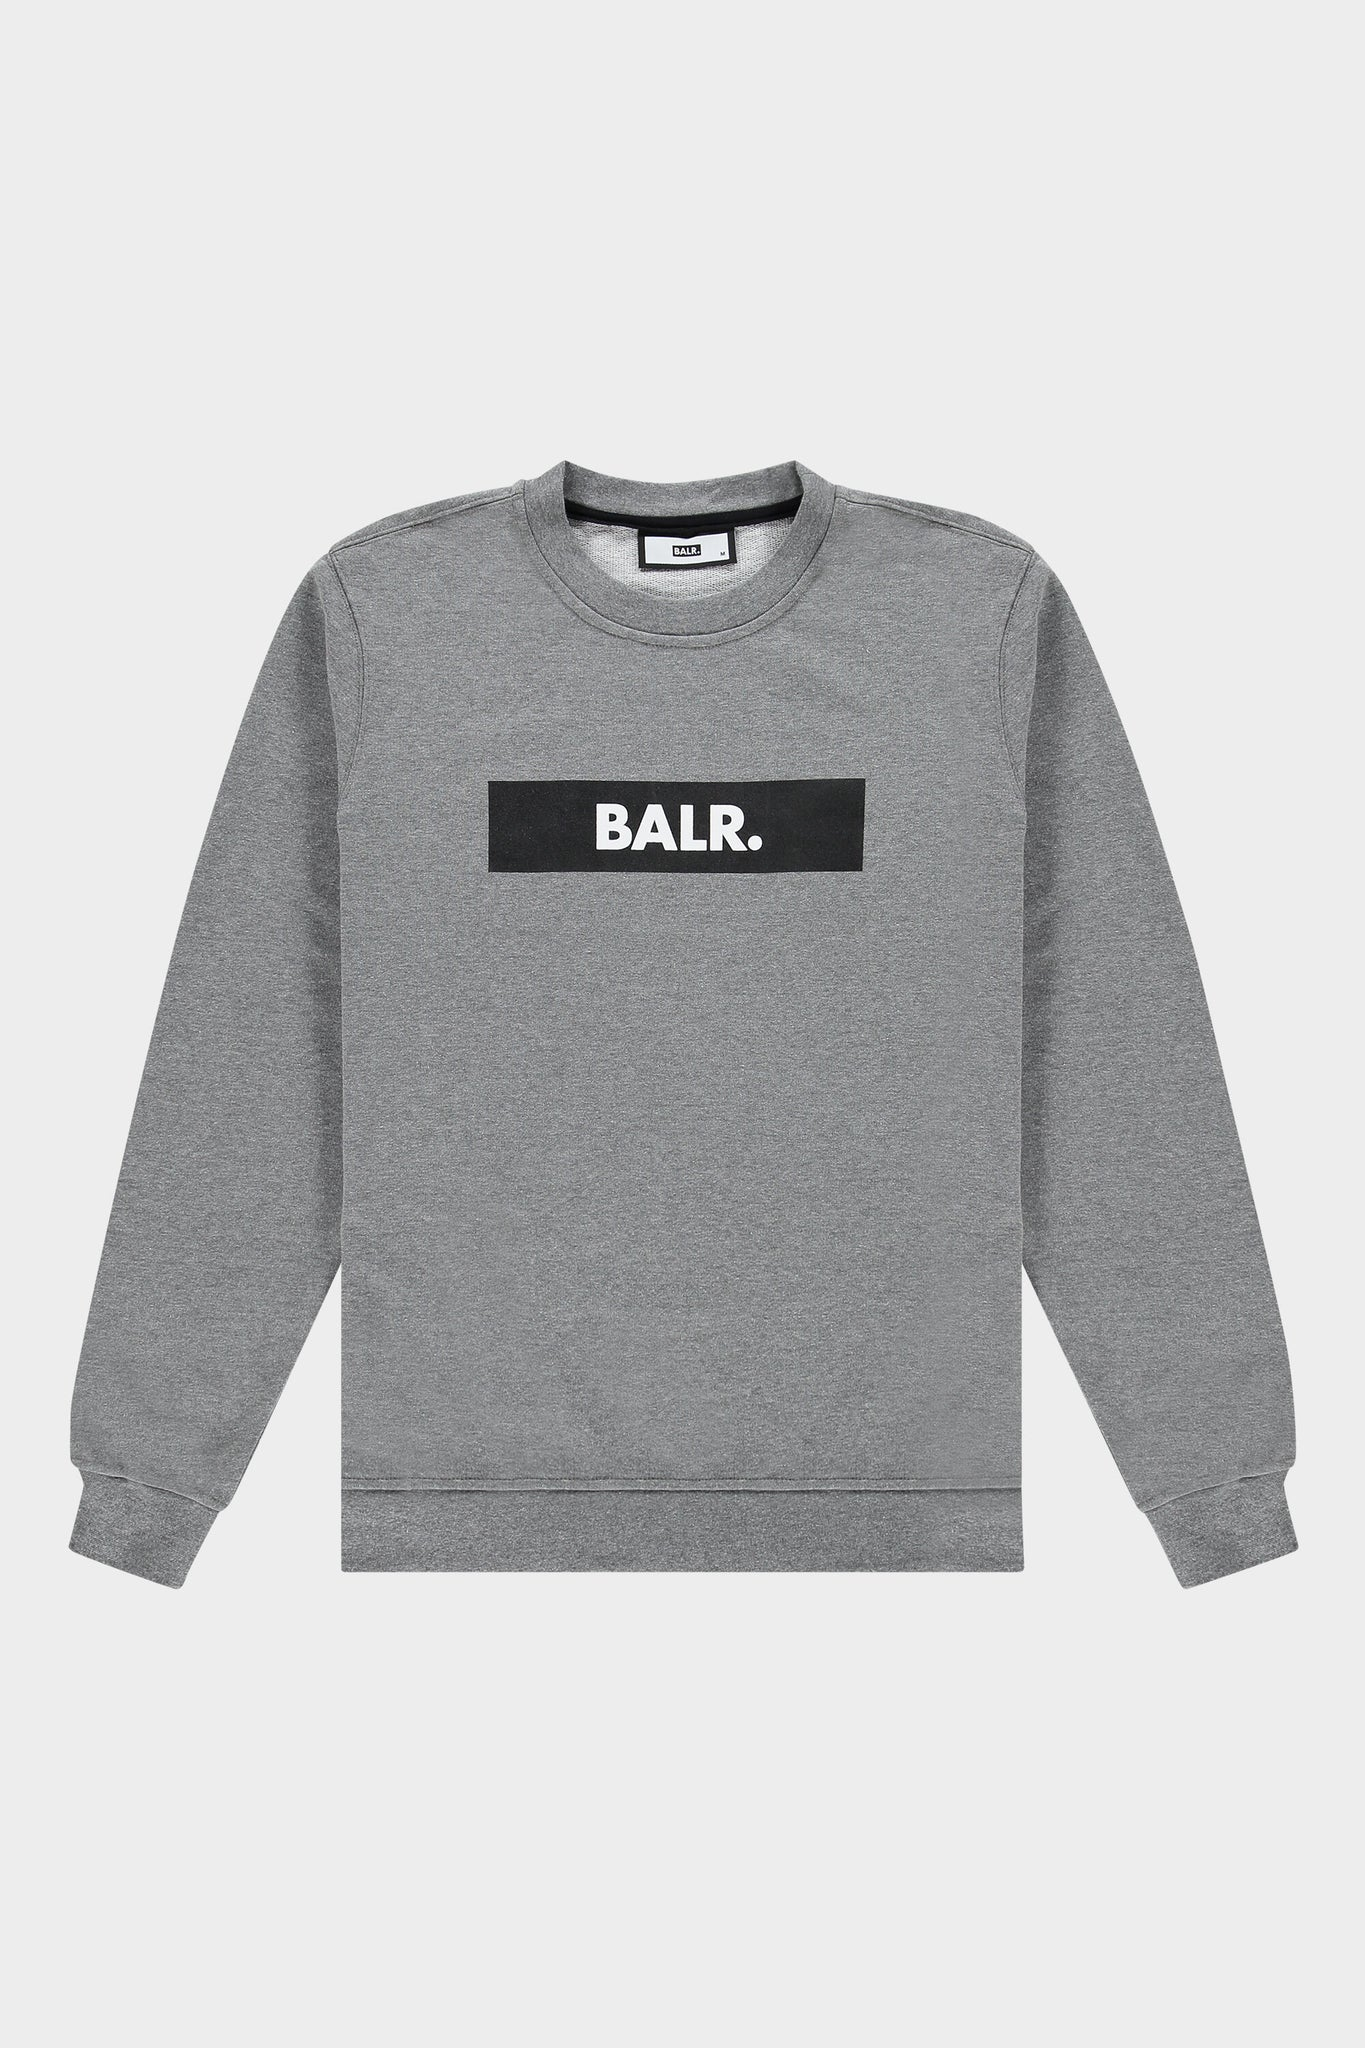 BALR. Straight Crewneck Club Dark Grey Heather